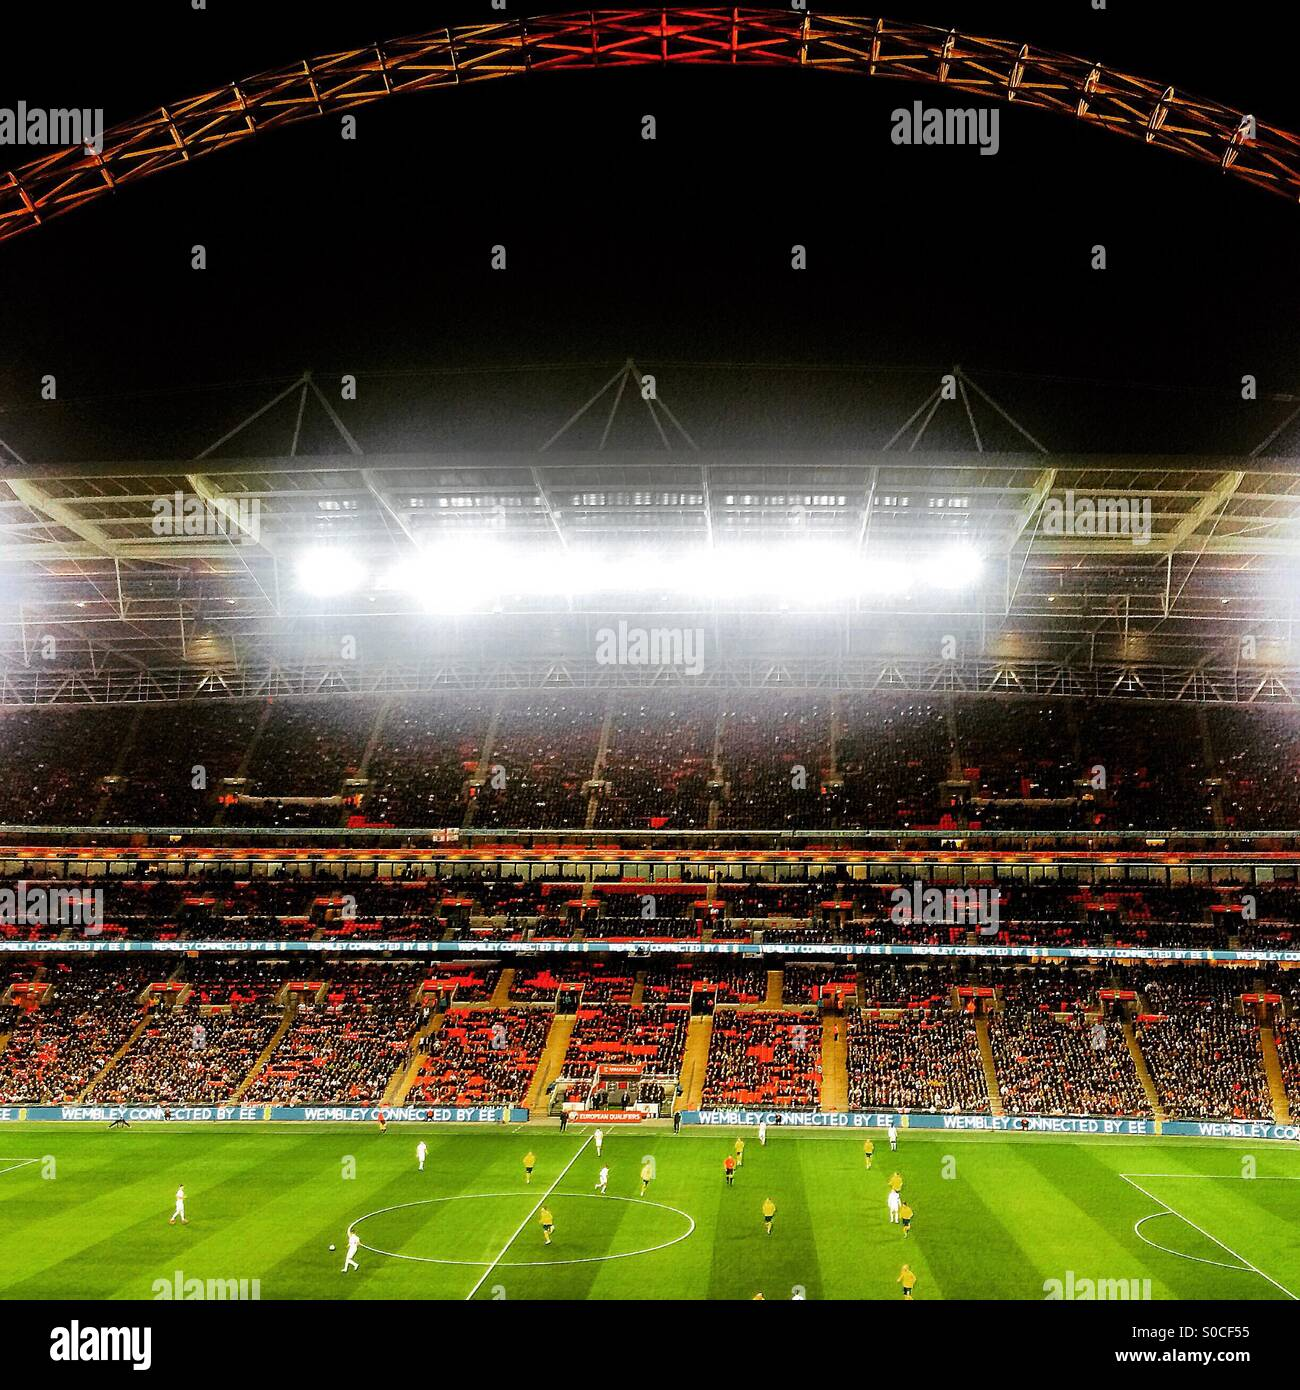 England Vs Lithuania, Wembley Stadium - Stock Image